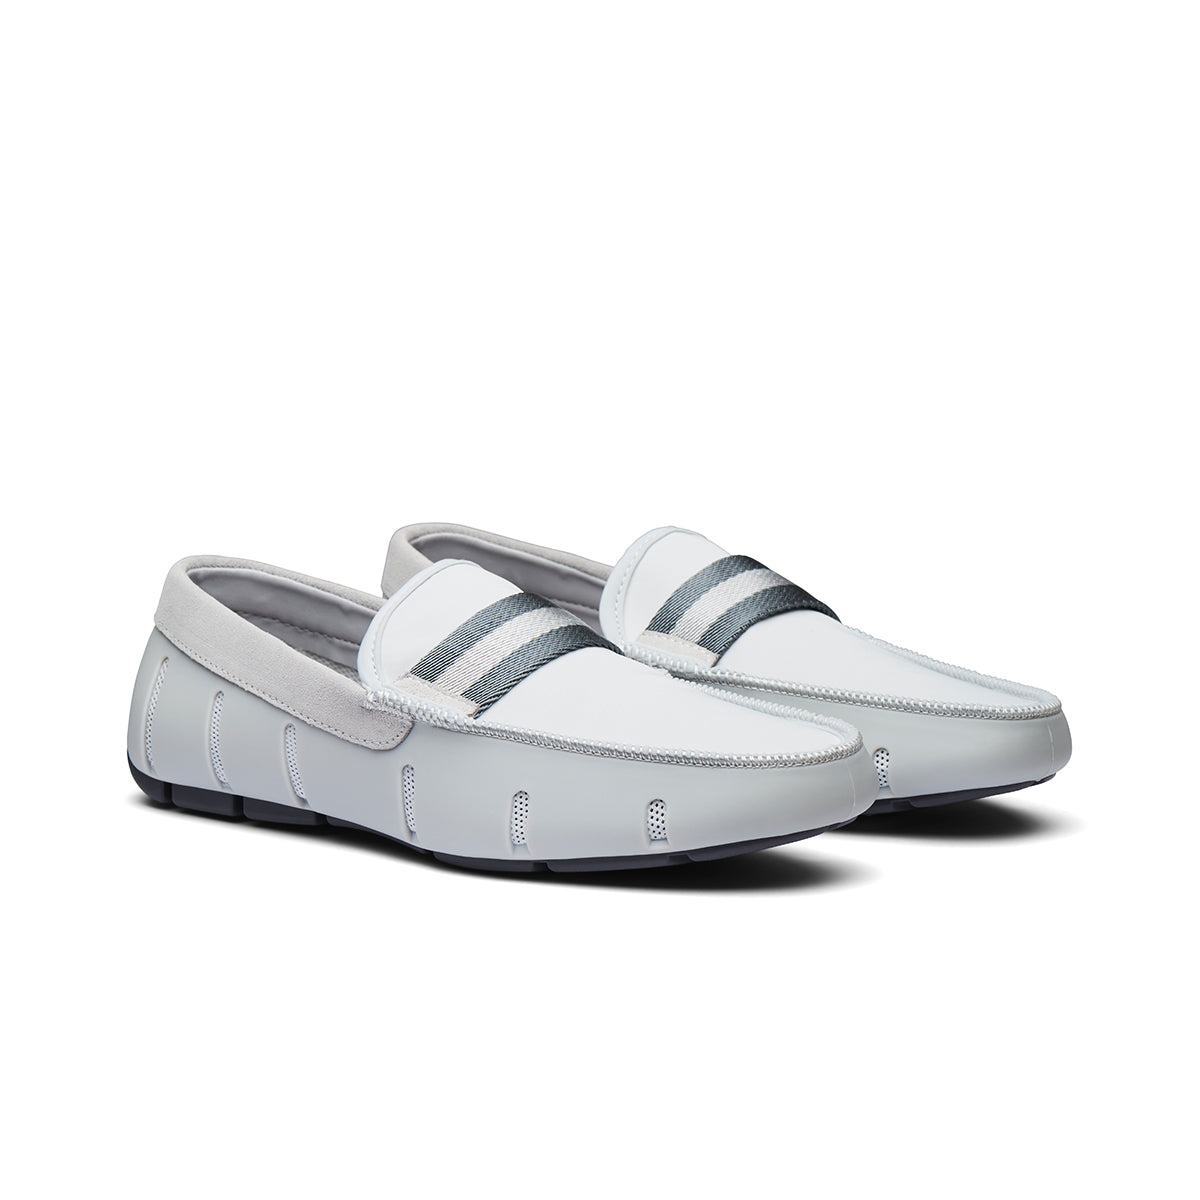 Flex Web Loafer - background::white,variant::Glacier Gray